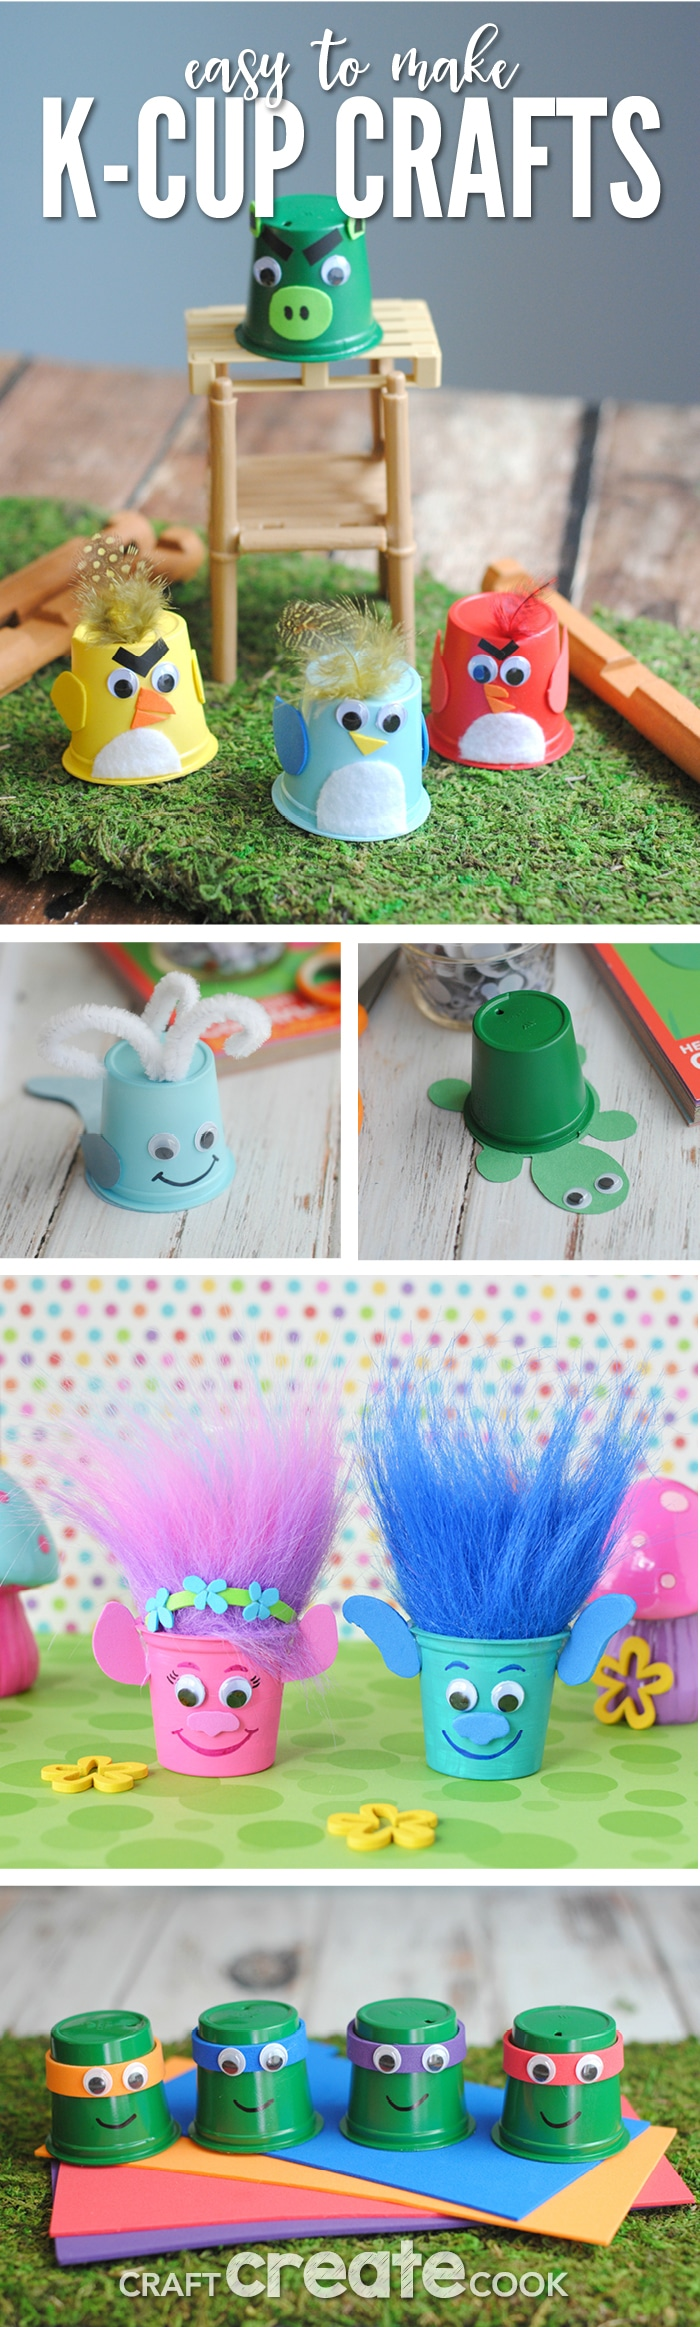 Upcycle and Reuse K-Cups to make these fun k-cup crafts!